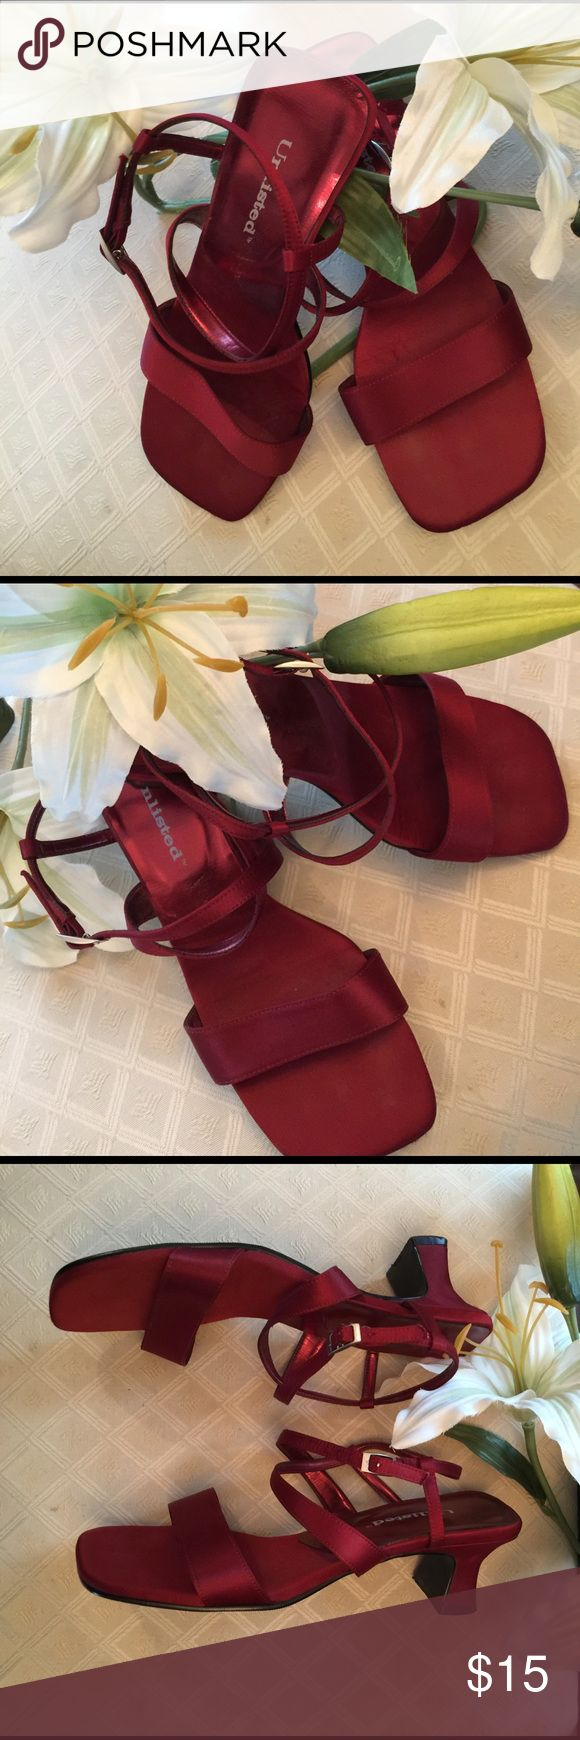 UNLISTED VELVET RUBY RED HEELS👠 Match your ruby red lips💋to these beauties, Unlisted ruby red heels👠 and be the conversation starter, or just be the conversation💋😍... Like new only worn a couple times❤️ Unlisted Shoes